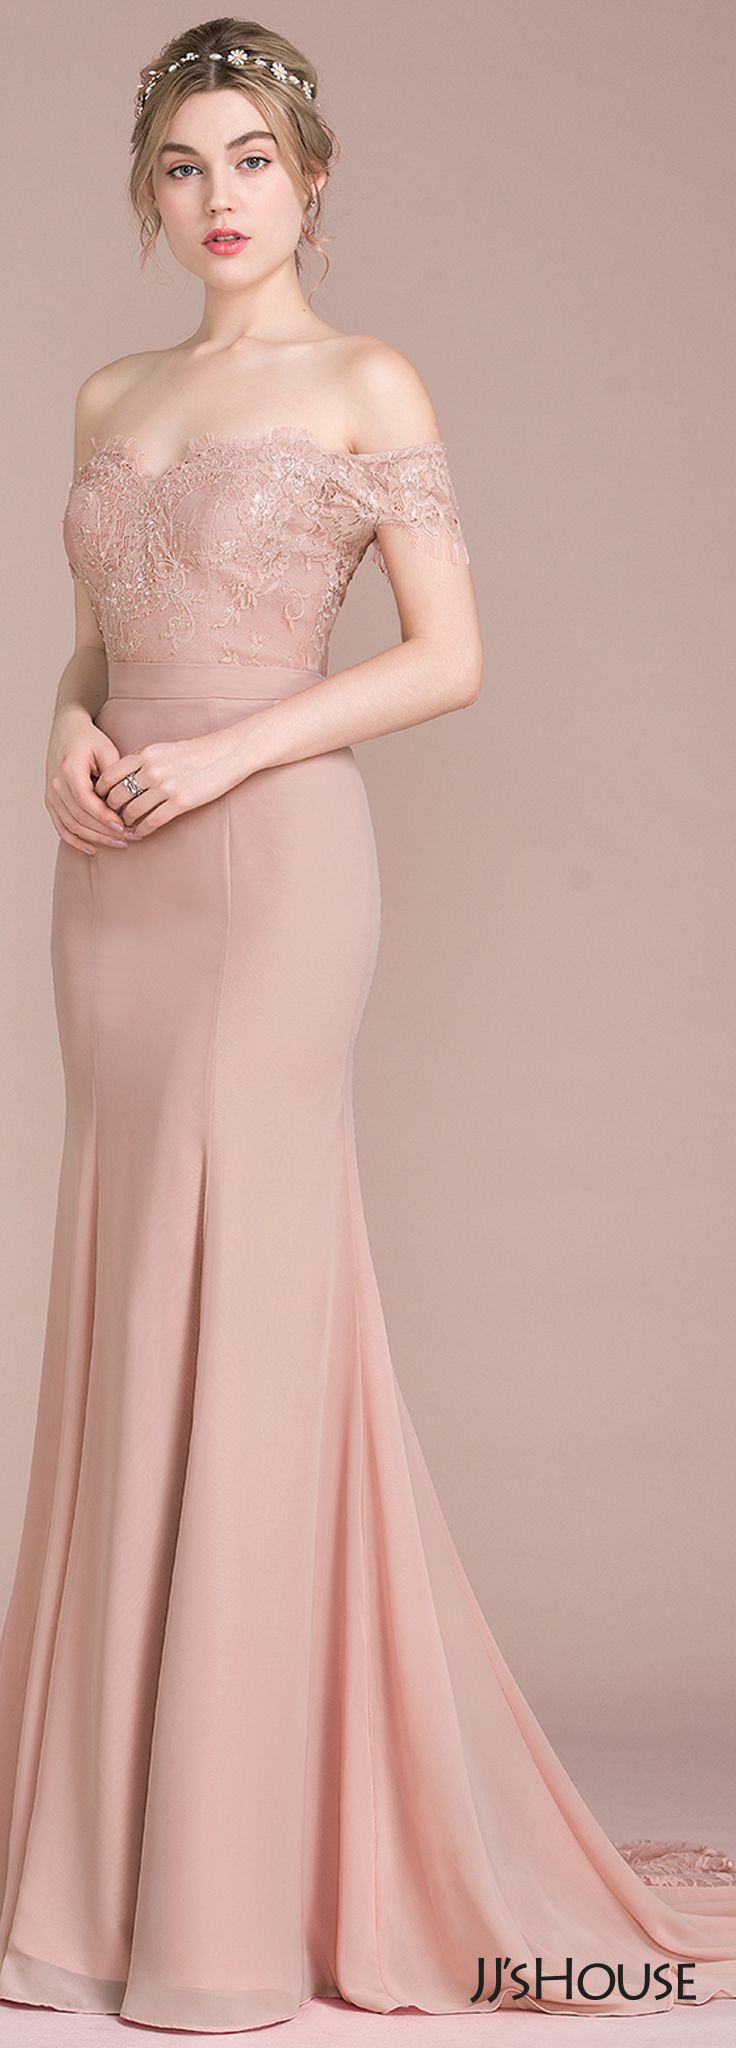 Jjshouse bridesmaid dress pinterest gowns prom and wedding